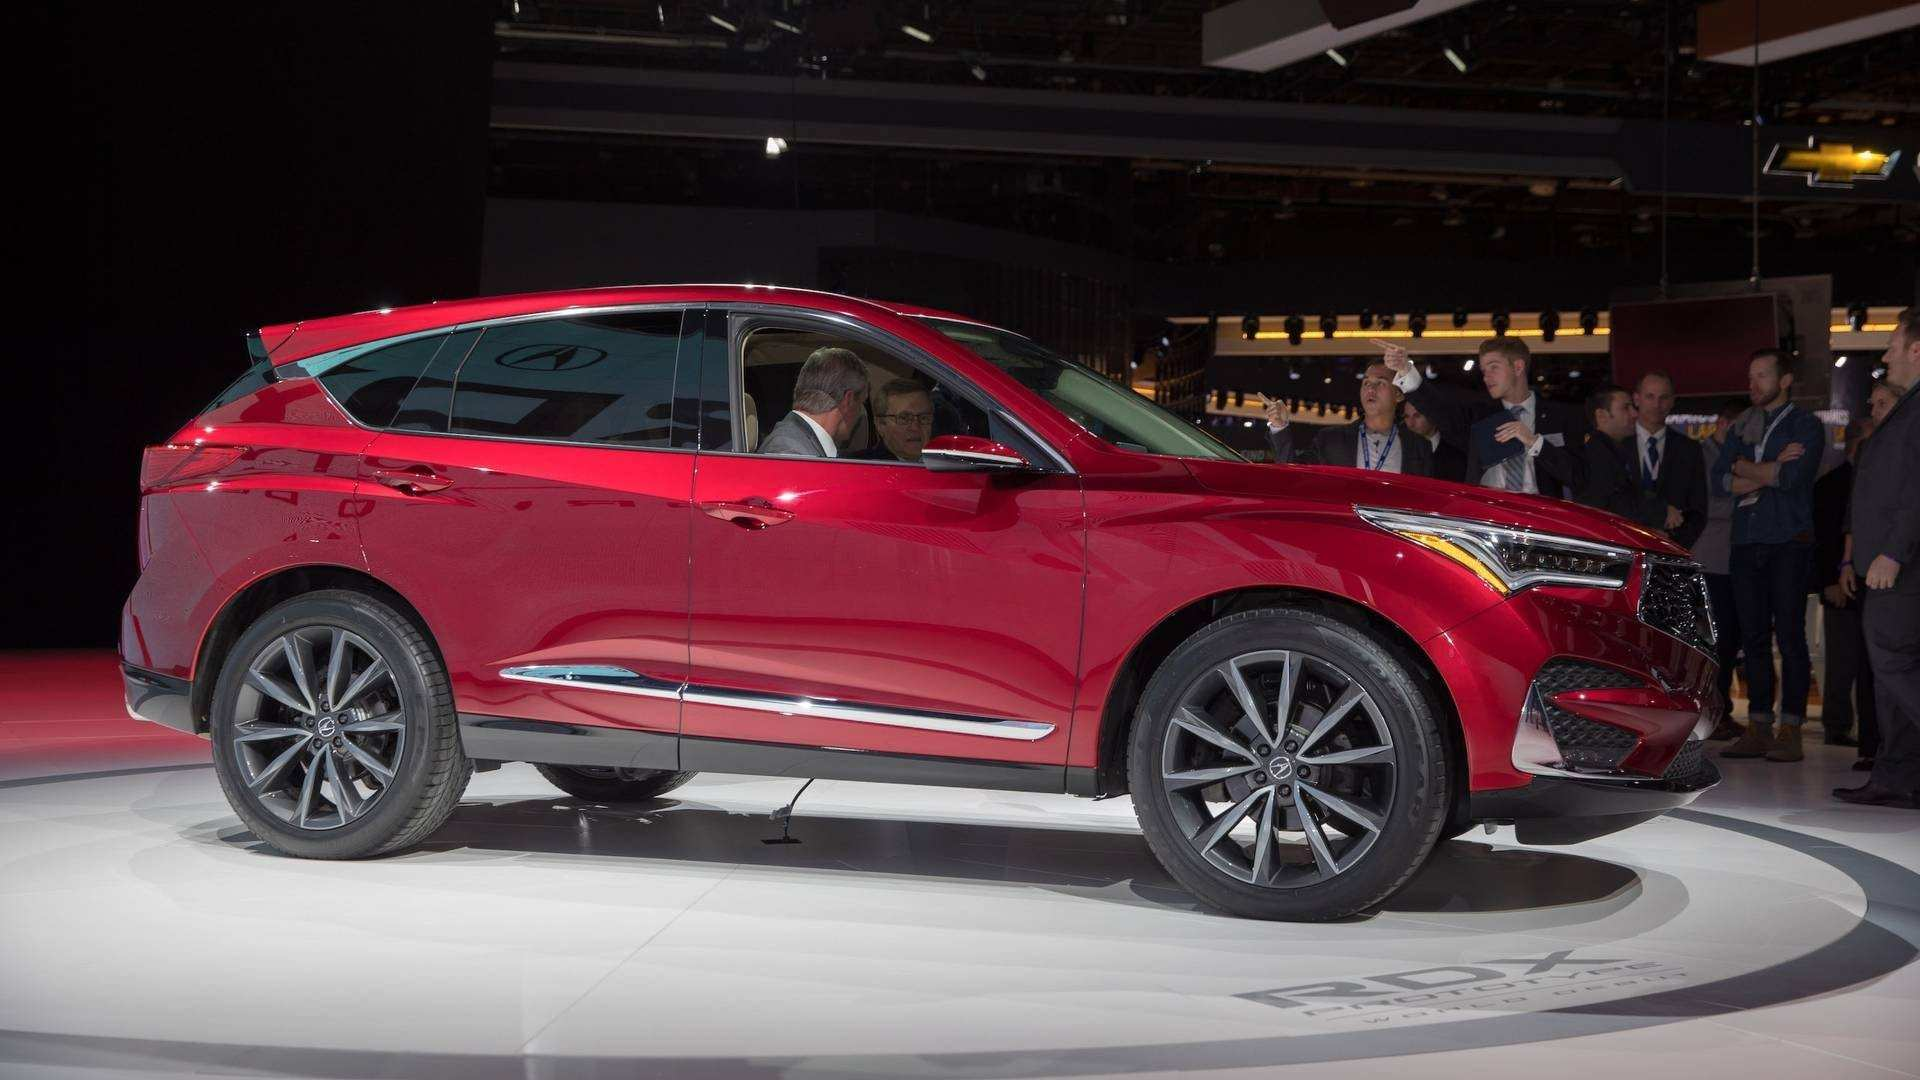 88 Gallery of New Acura Rdx 2019 Exterior Colors Spy Shoot Exterior with New Acura Rdx 2019 Exterior Colors Spy Shoot